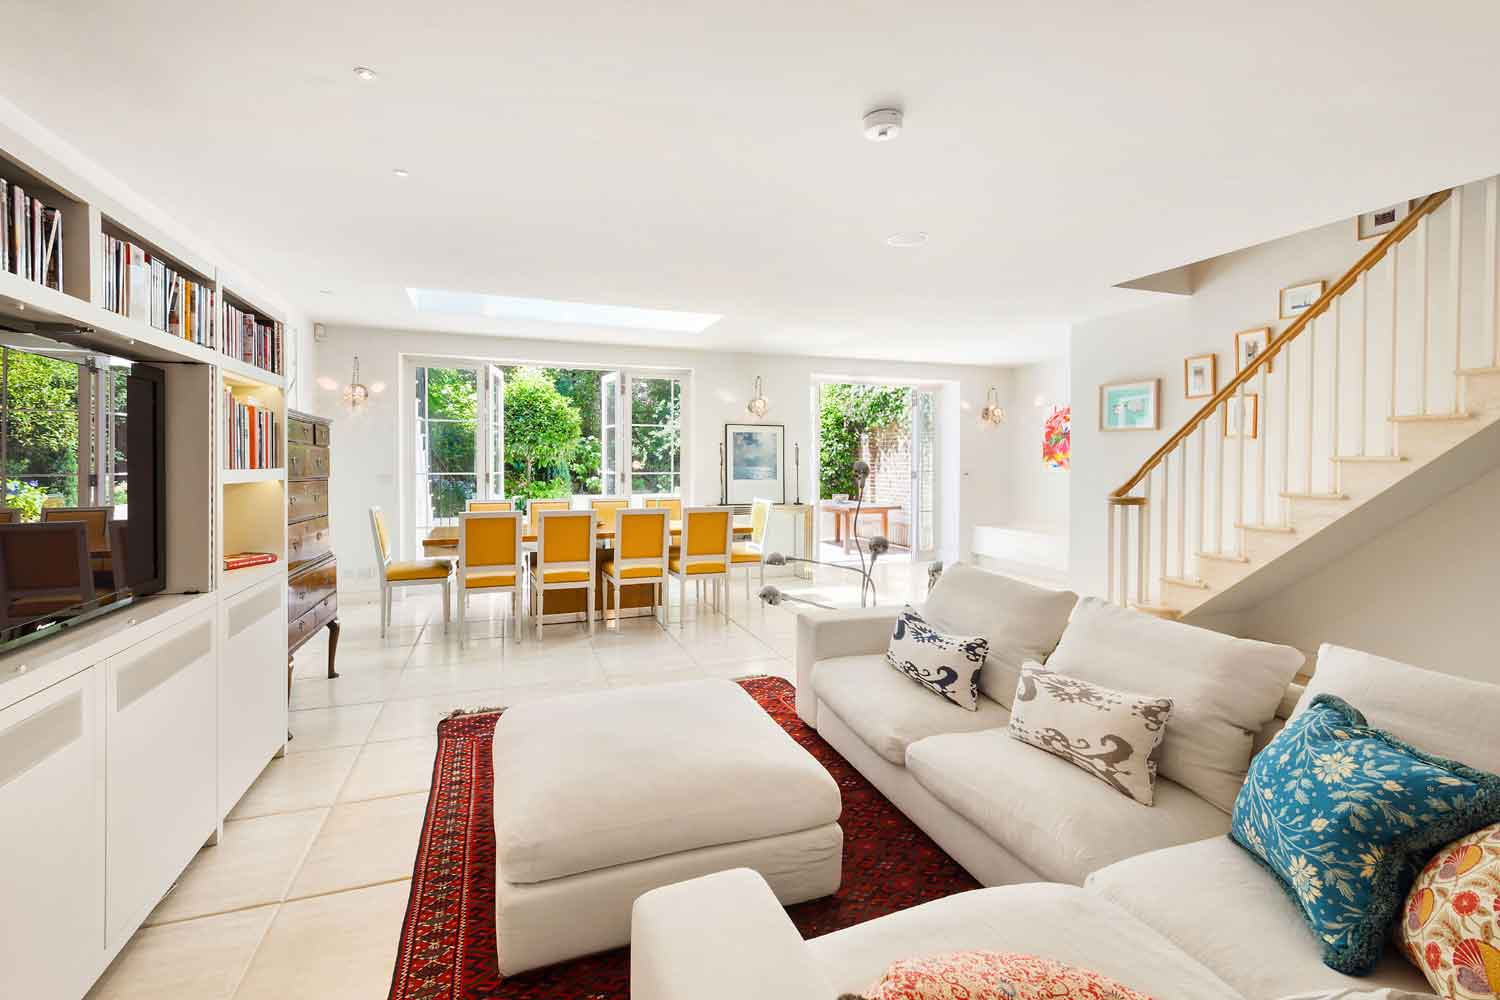 <b>London, United Kingdom</b><br/><i>6 Bedrooms, 3,681 sq. ft.</i><br/>Six bedroom house with family large garden